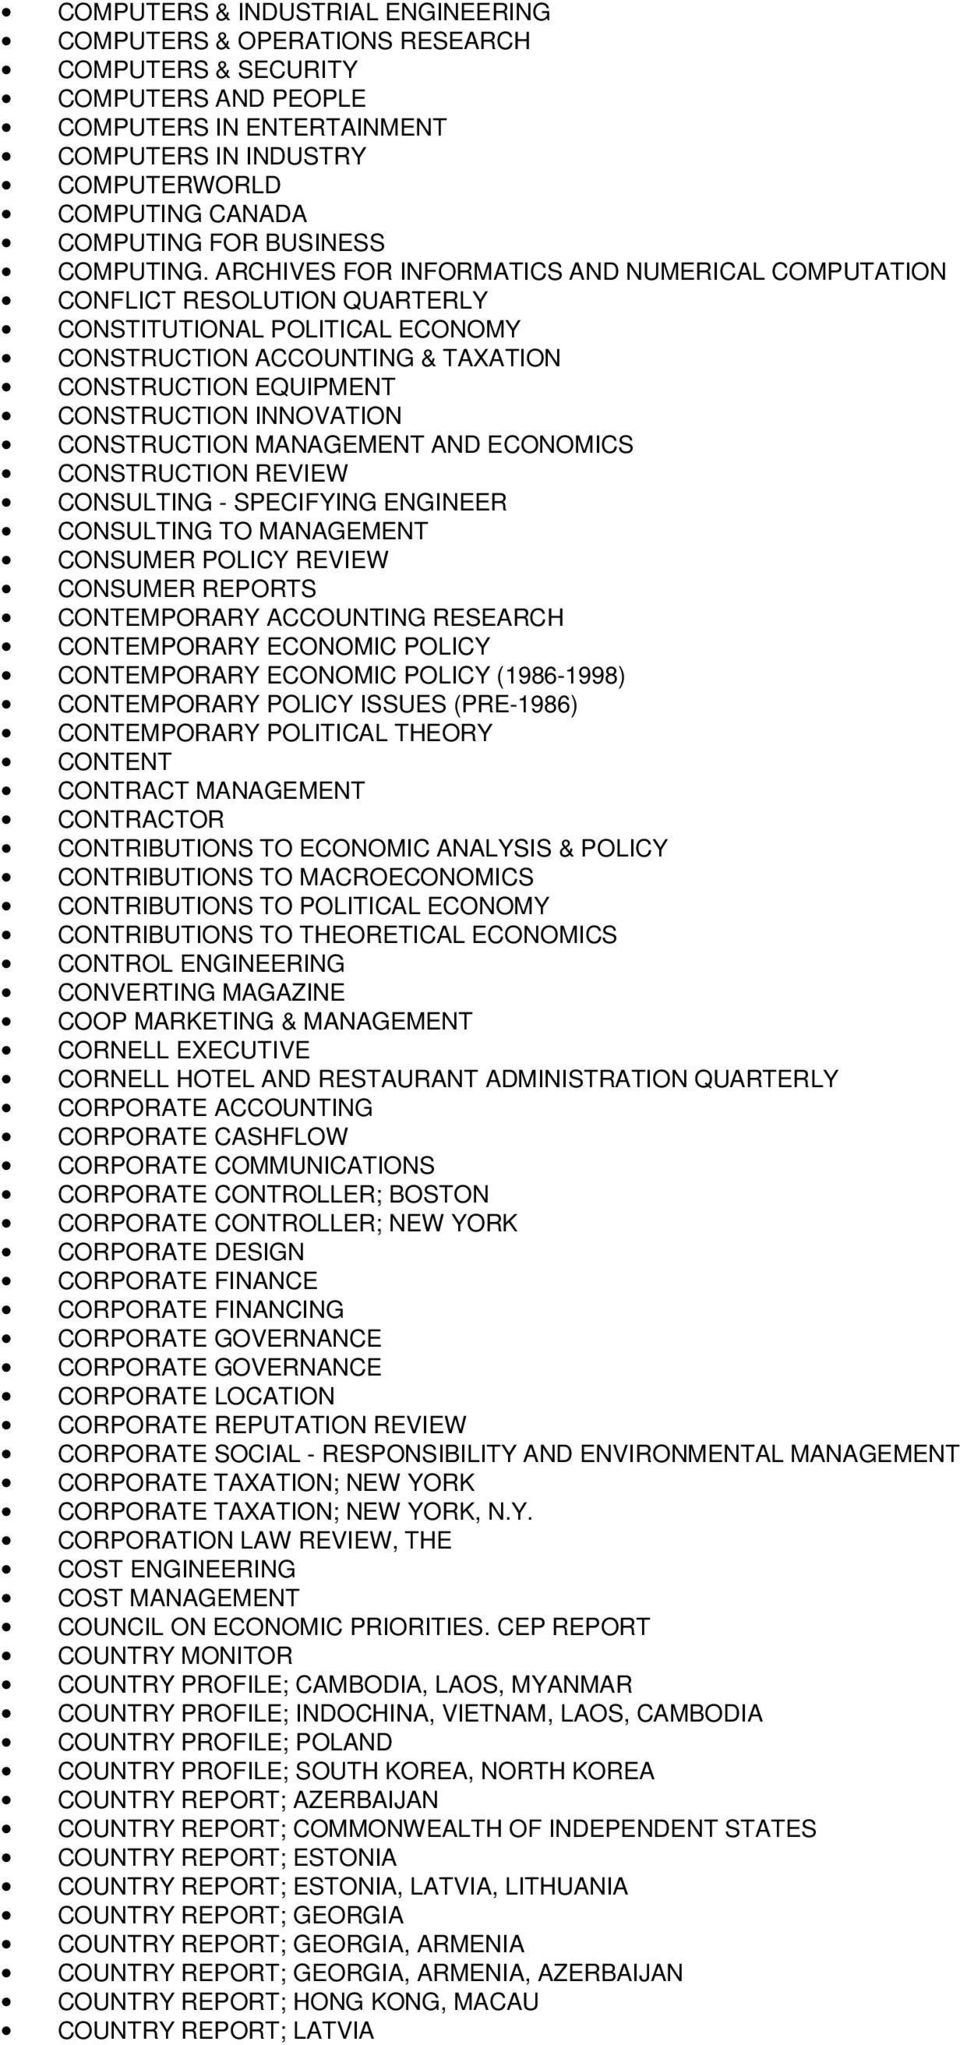 ARCHIVES FOR INFORMATICS AND NUMERICAL COMPUTATION CONFLICT RESOLUTION QUARTERLY CONSTITUTIONAL POLITICAL ECONOMY CONSTRUCTION ACCOUNTING & TAXATION CONSTRUCTION EQUIPMENT CONSTRUCTION INNOVATION